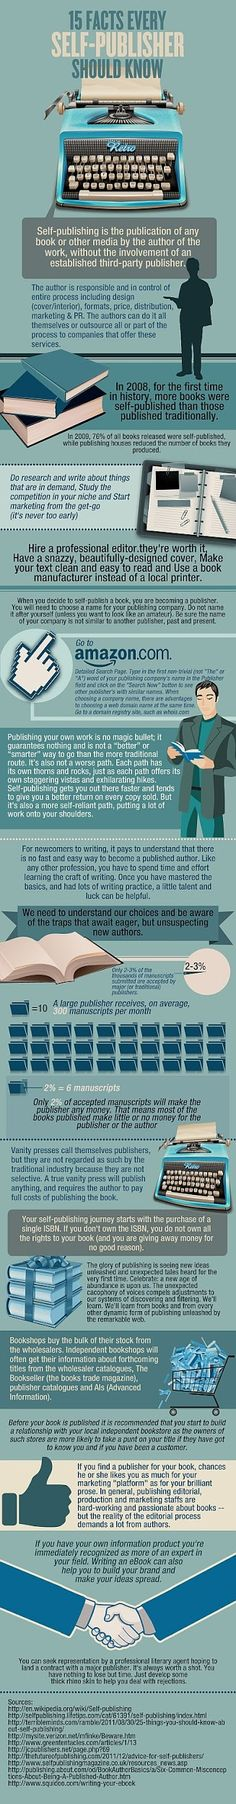 Nick's Writing Blog: 15 Facts Every Self-Publisher Should Know [Infographic]